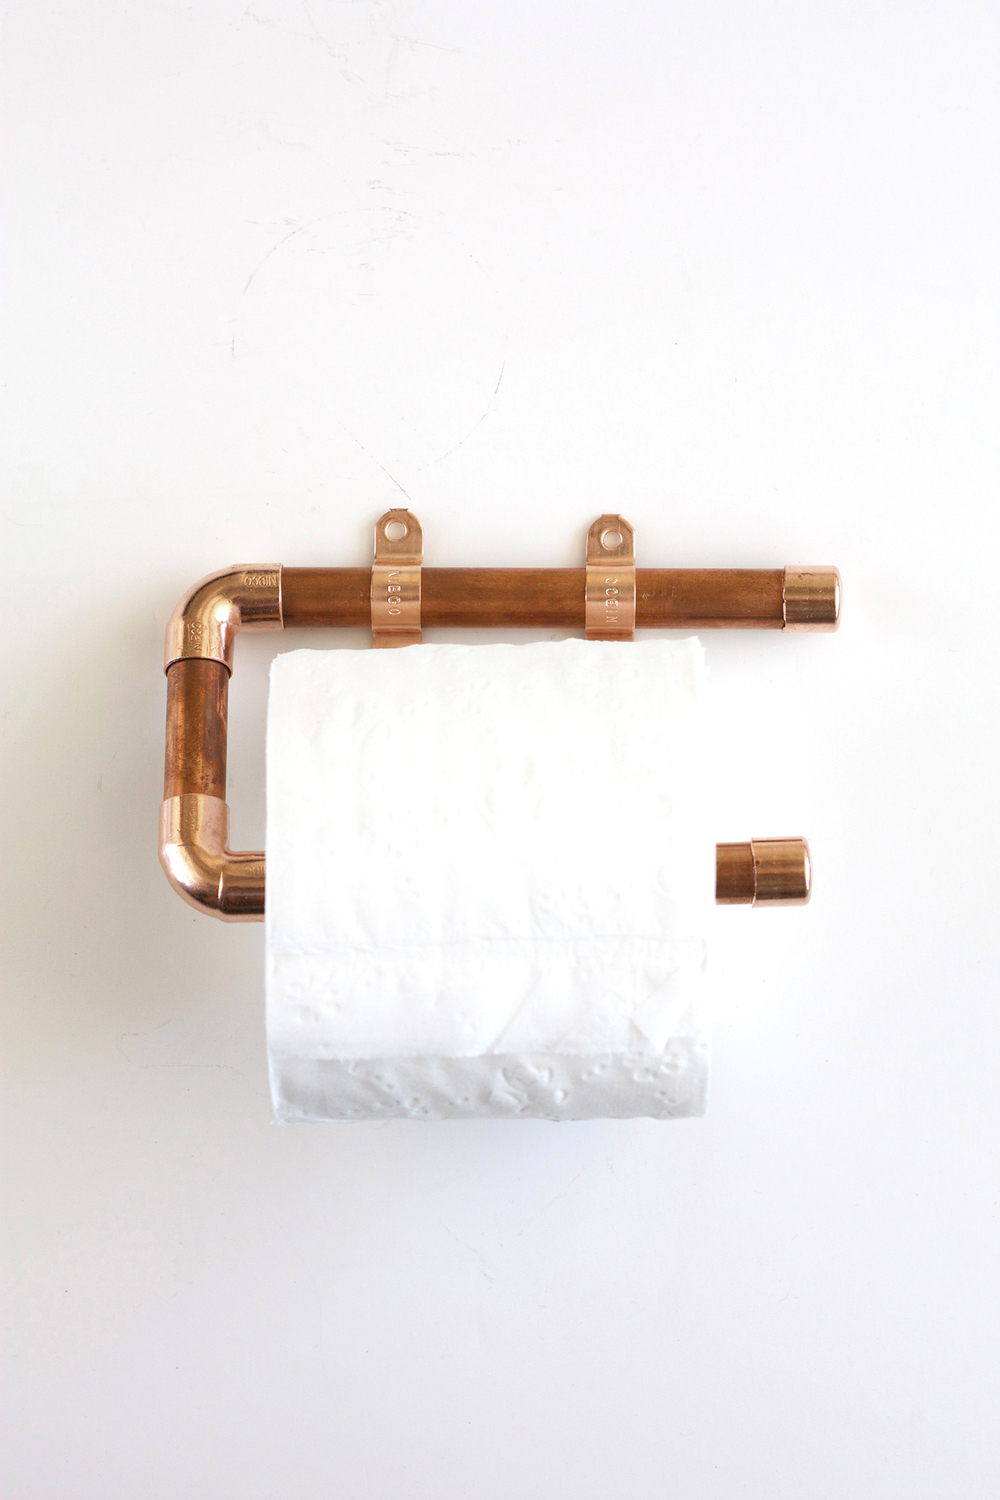 Make A Toilet Paper Holder